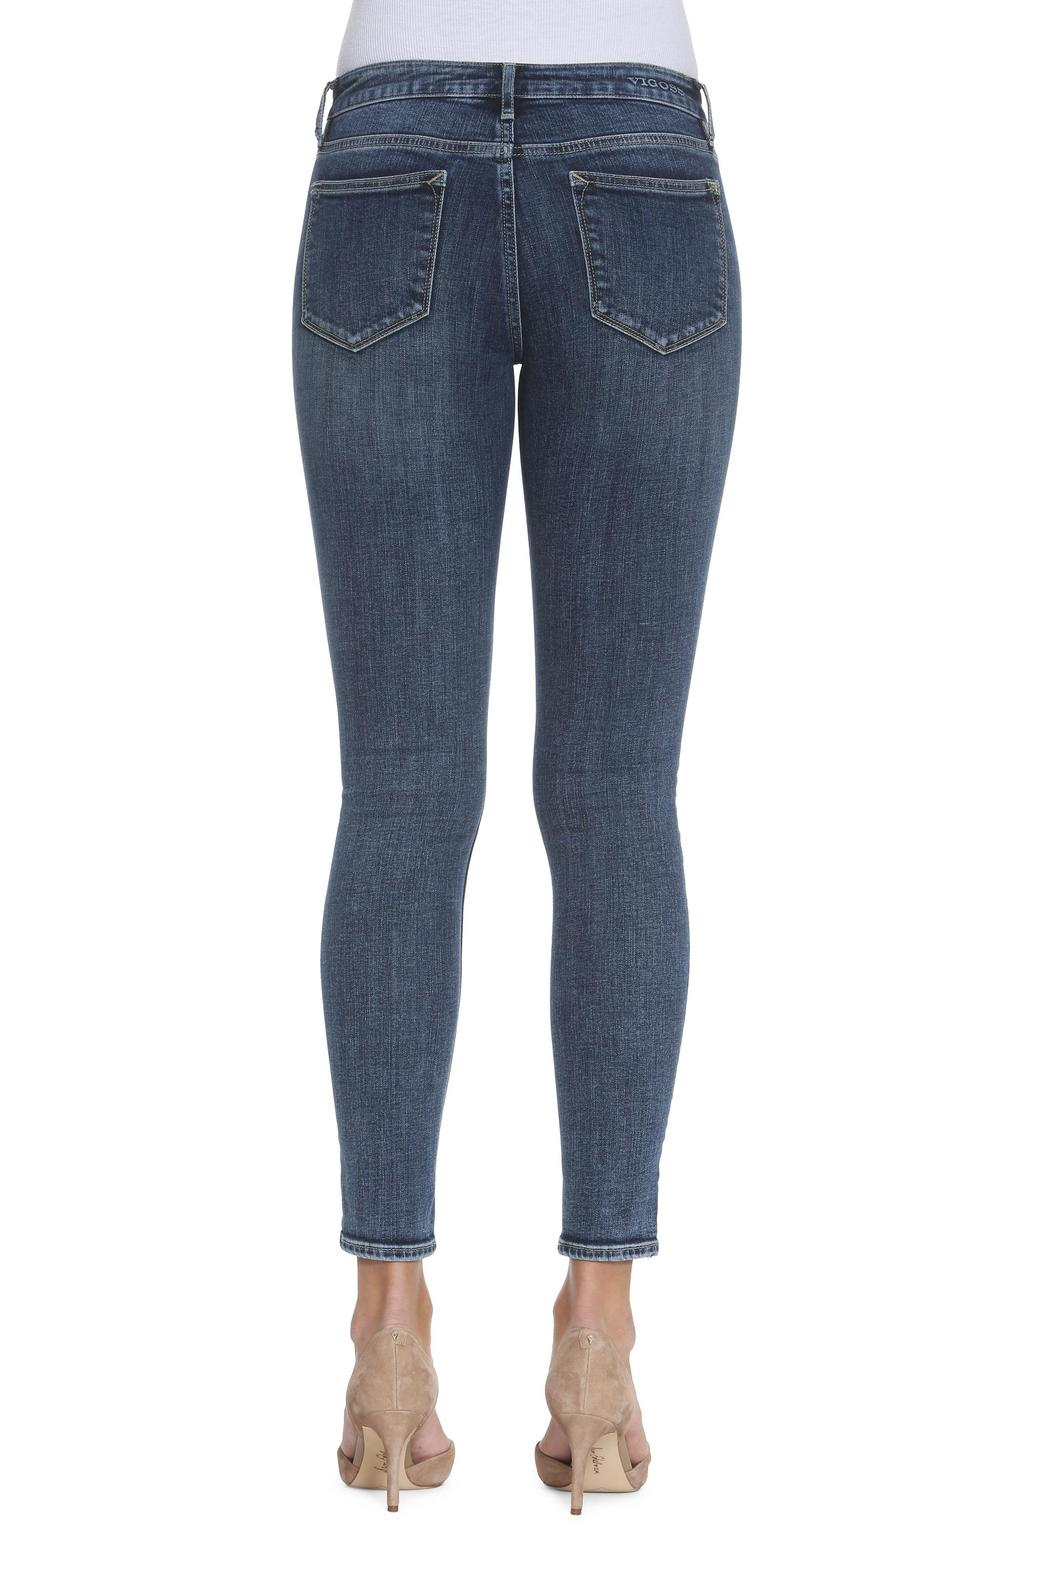 Vigoss Dark-Wash Skinny Jeans - Front Full Image